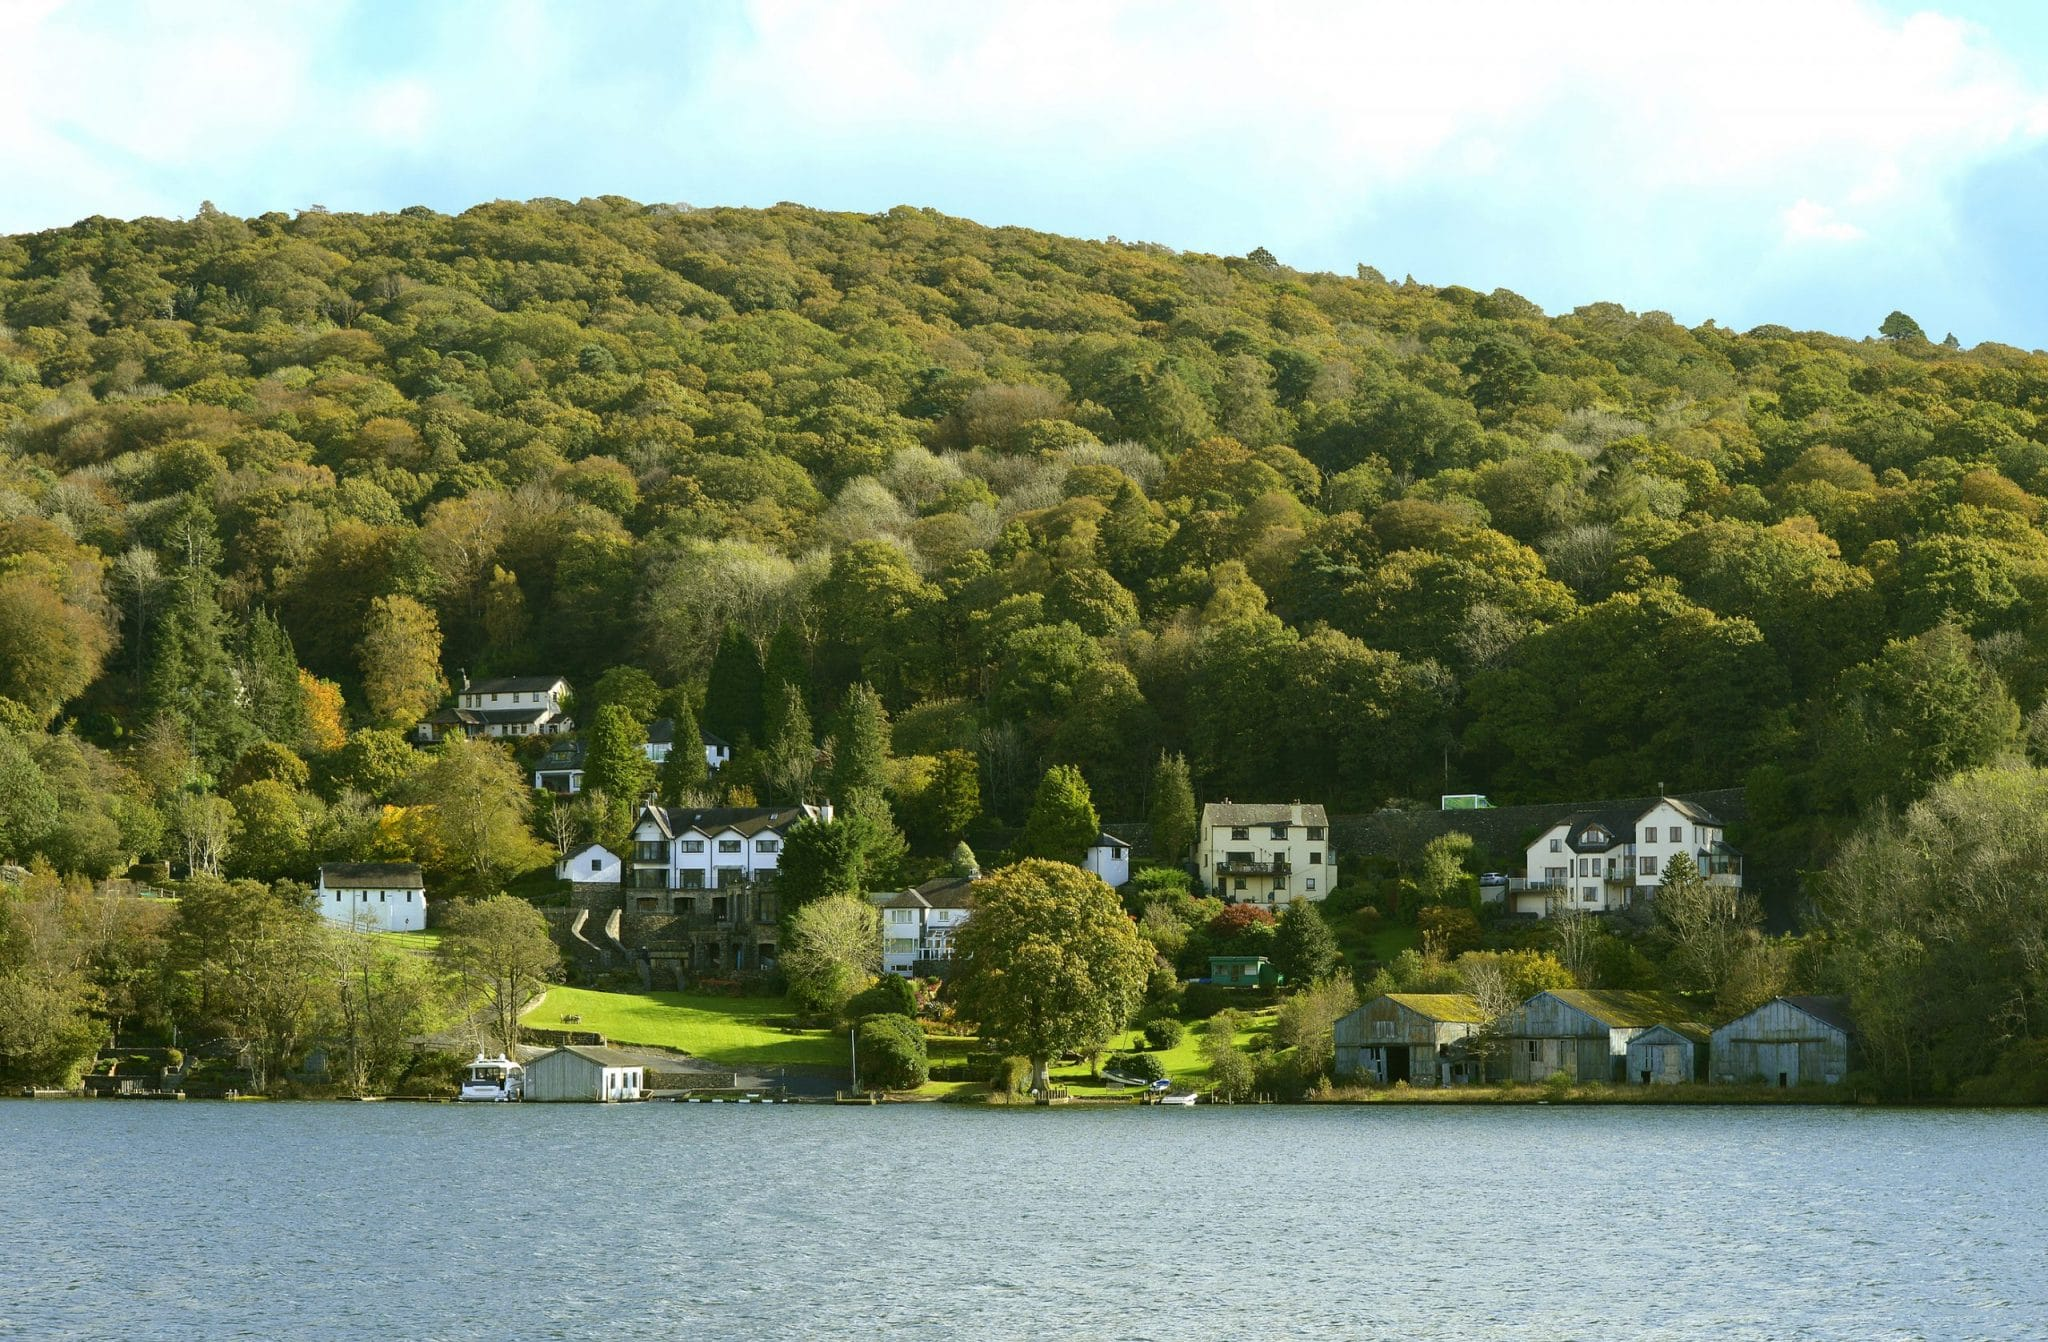 Lake Windermere, Cumbria, England, Uk - October 12, 2019 : Lakes